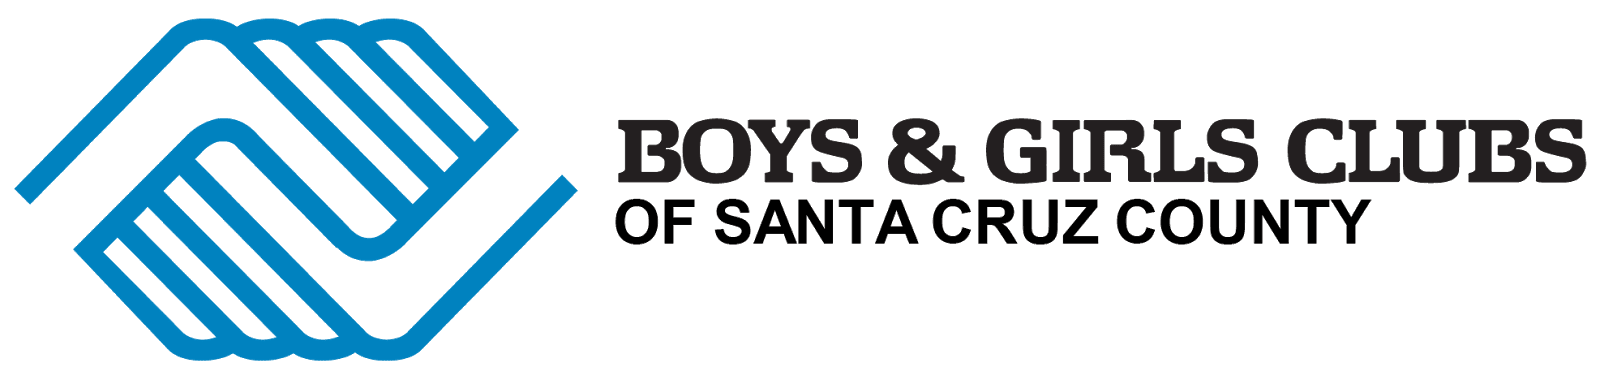 Santa Cruz Boys and Girls Club